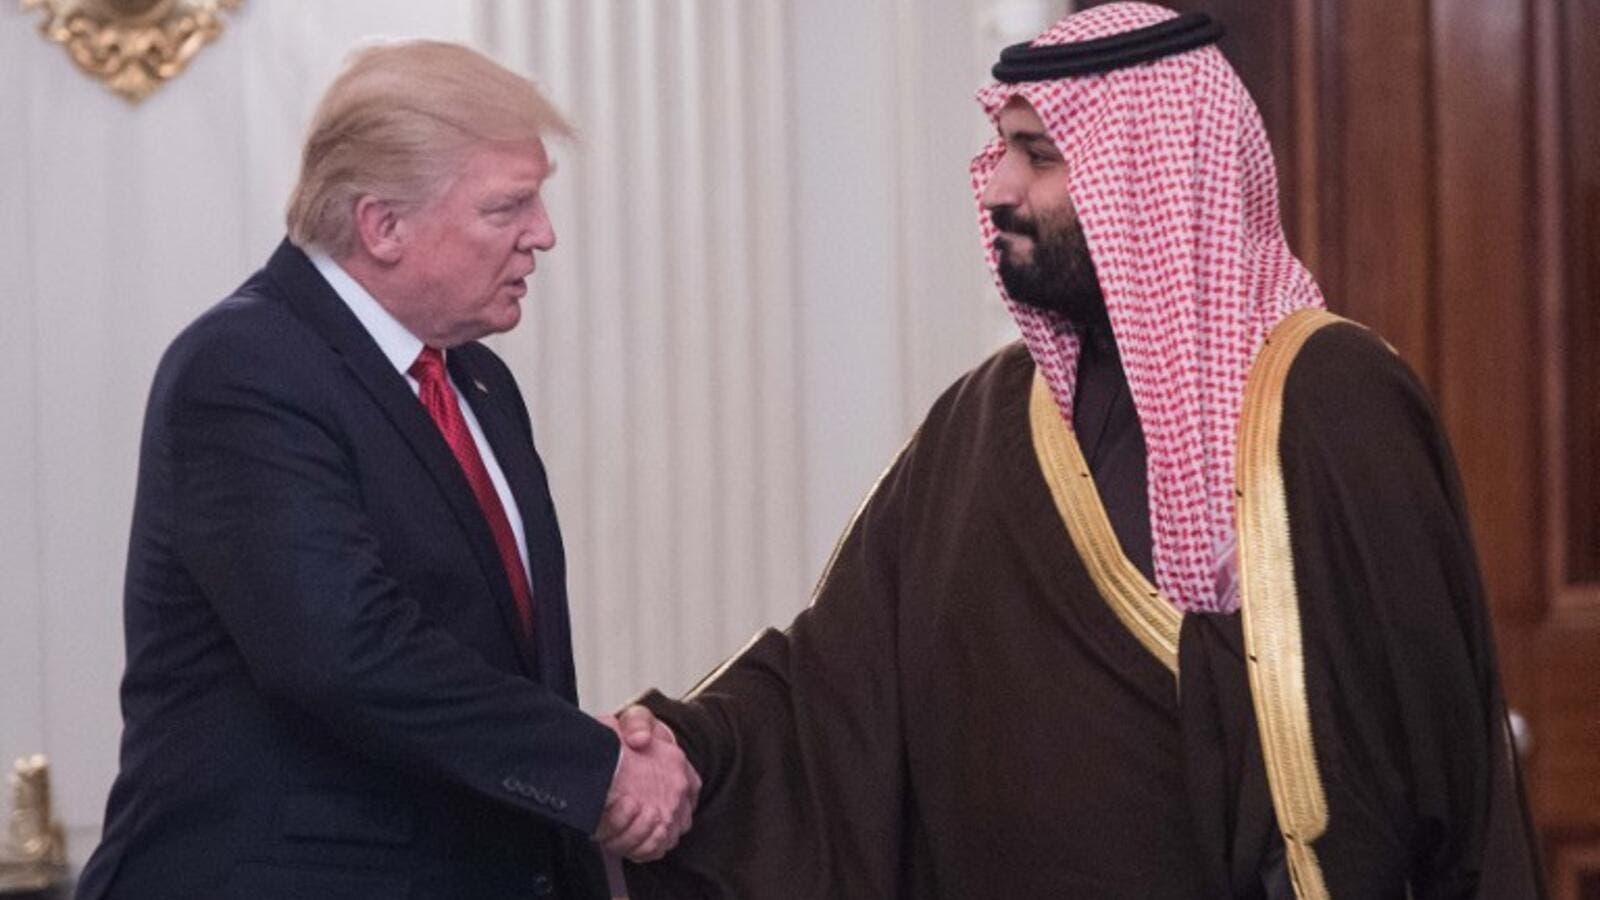 US and Saudi officials intend to consult on additional steps to deepen commercial ties and promote investment, and to expand cooperation in the energy sector. (AFP/Nicholas Kamm)